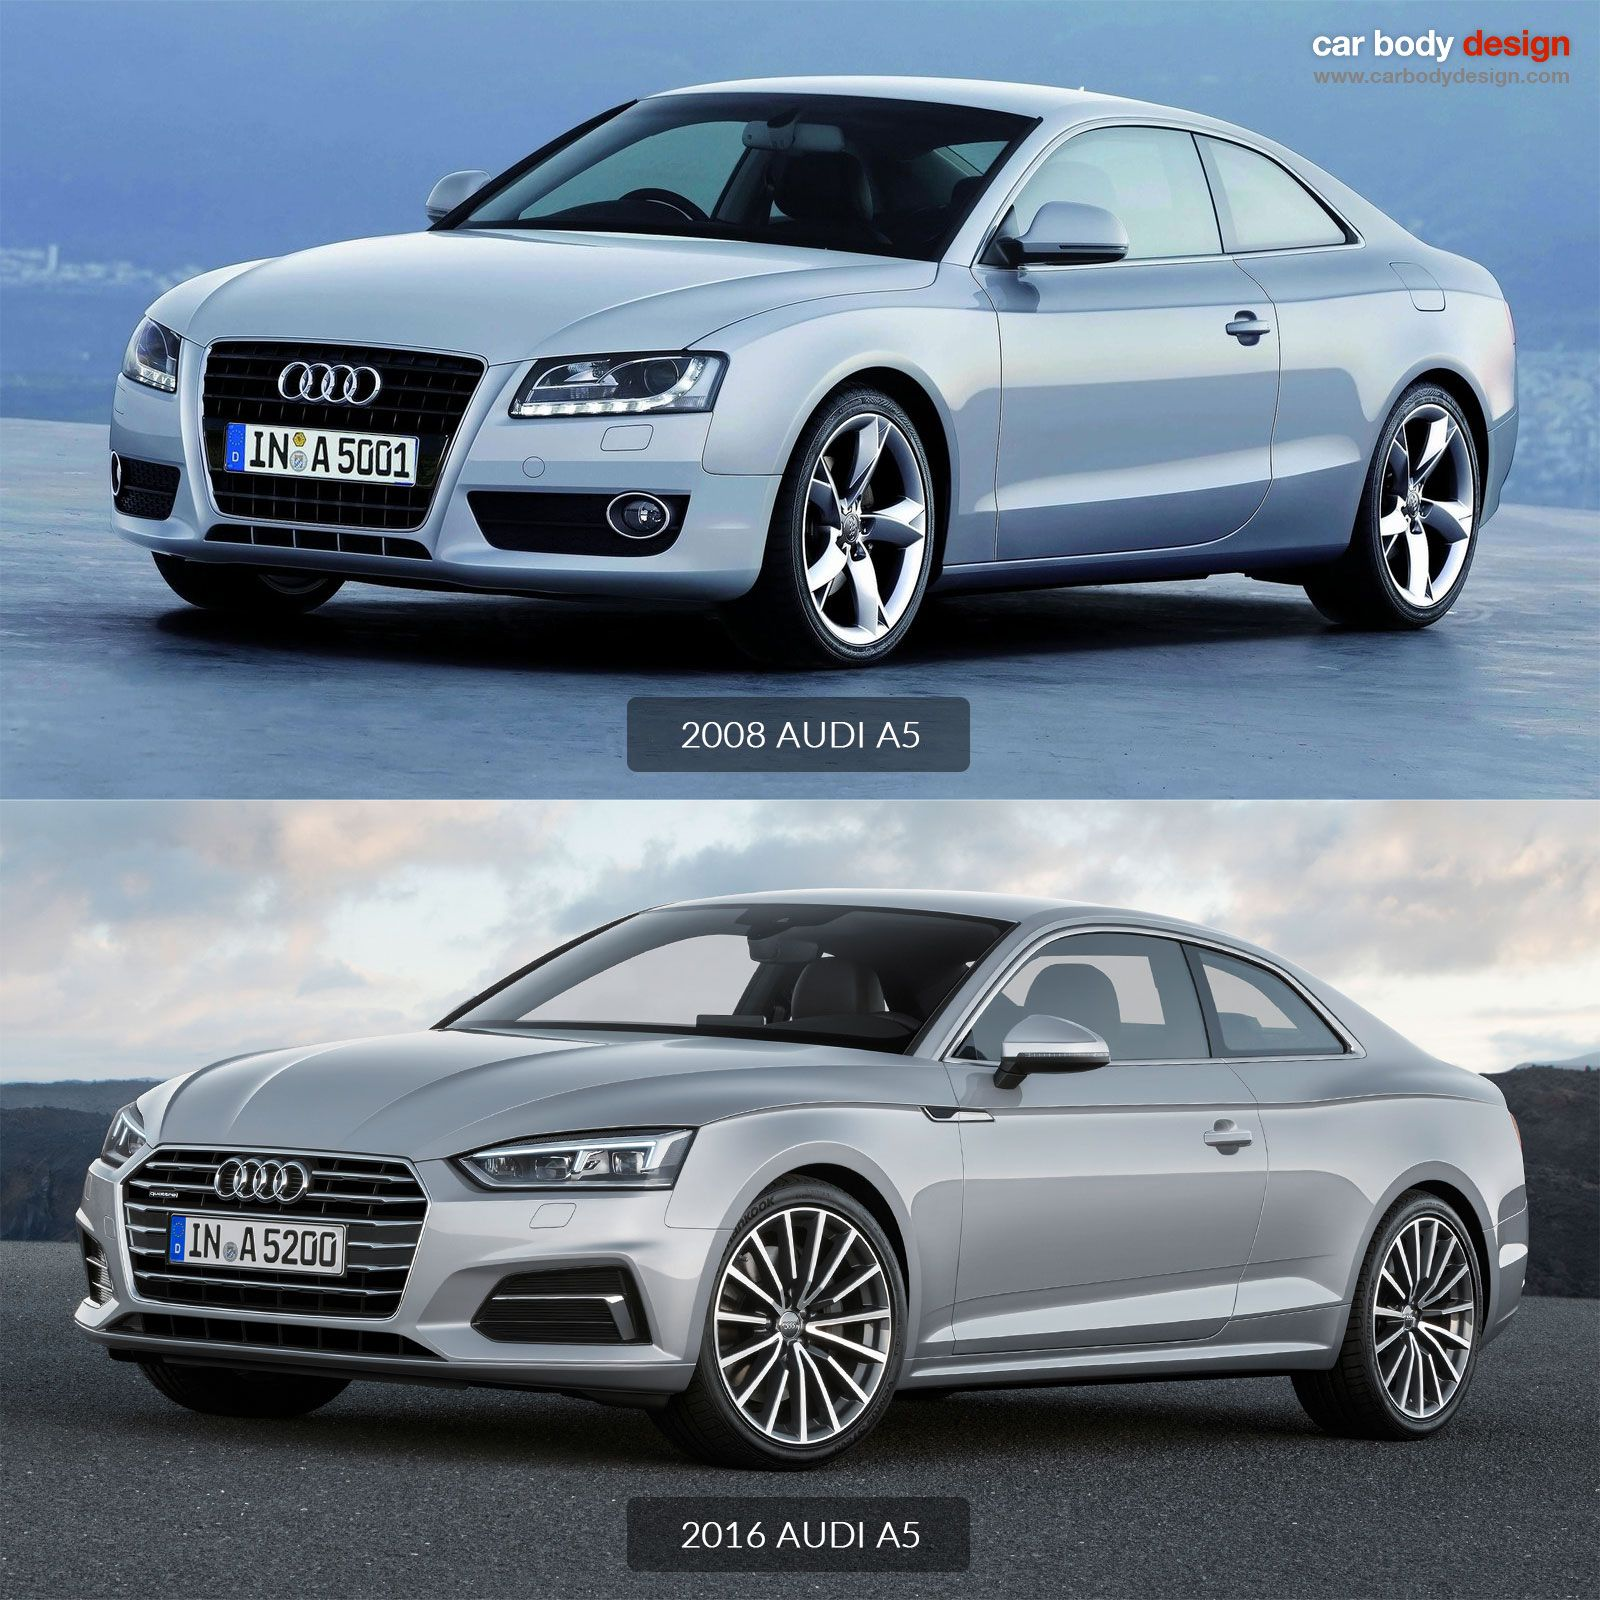 The new Audi A5 Coupé compared to the original 2008 model - check ...